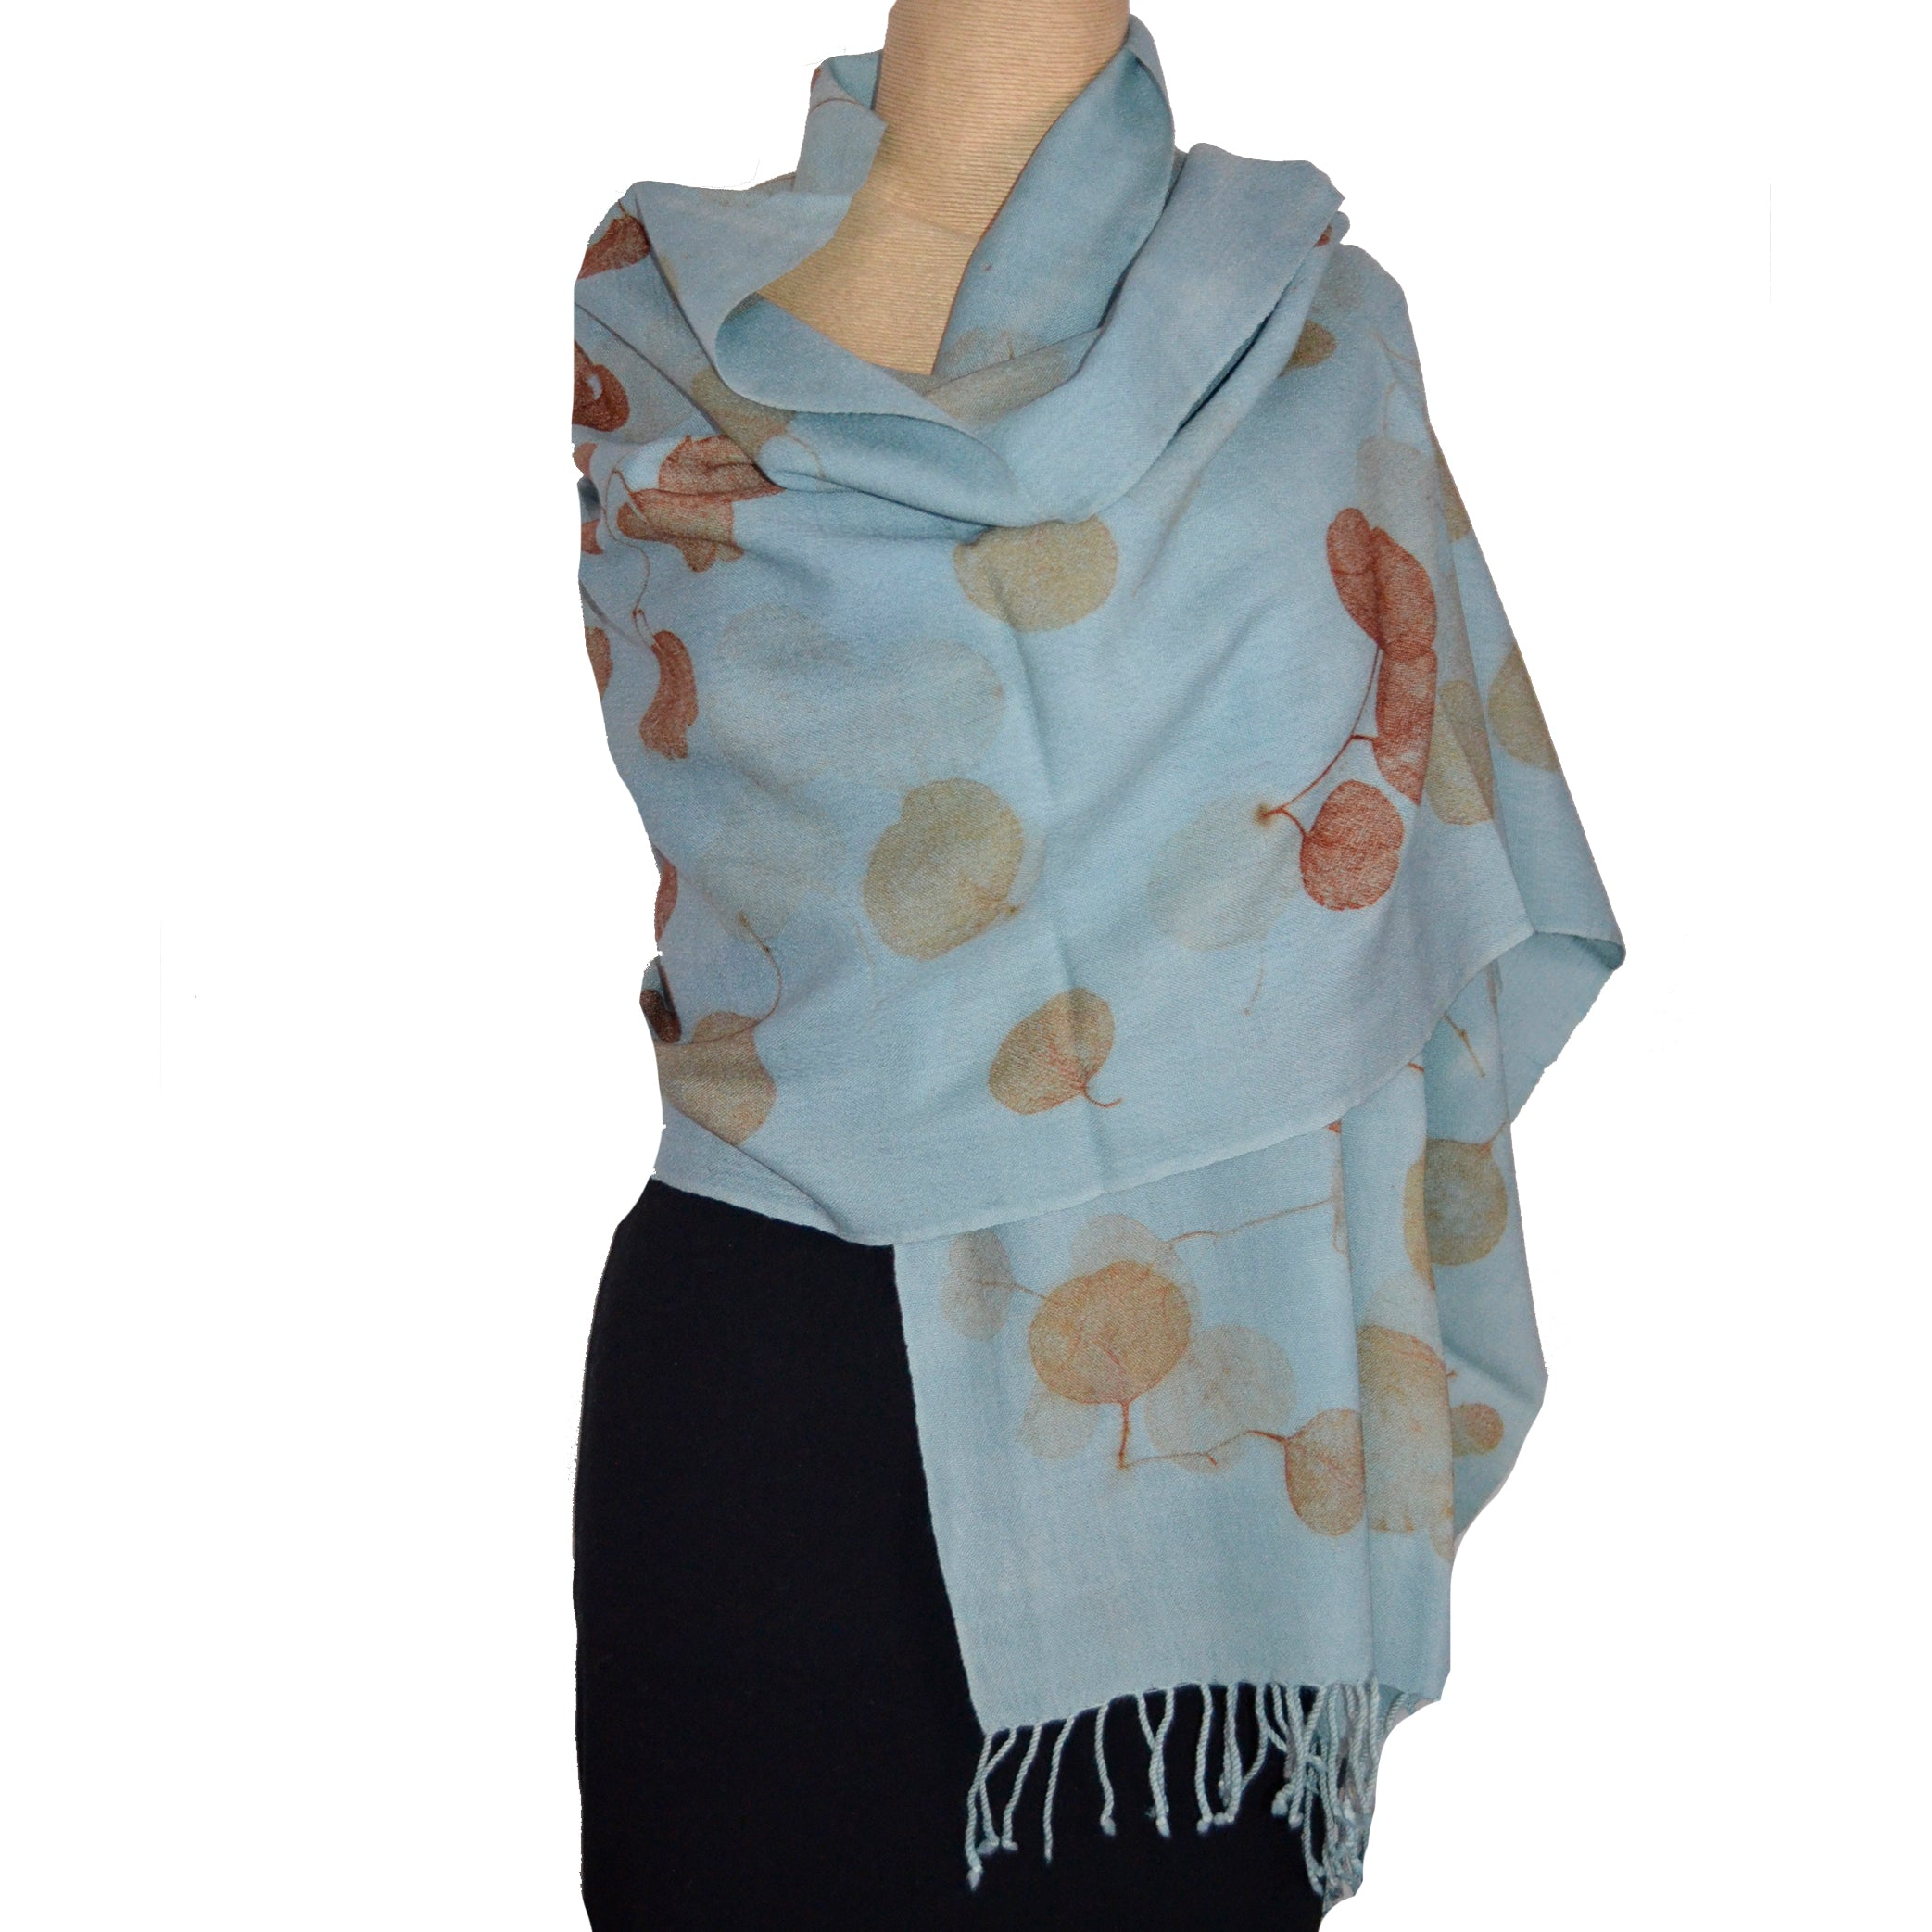 Nan Leaman Shawl, Botanical Printed with Eucalyptus on Baby Blue